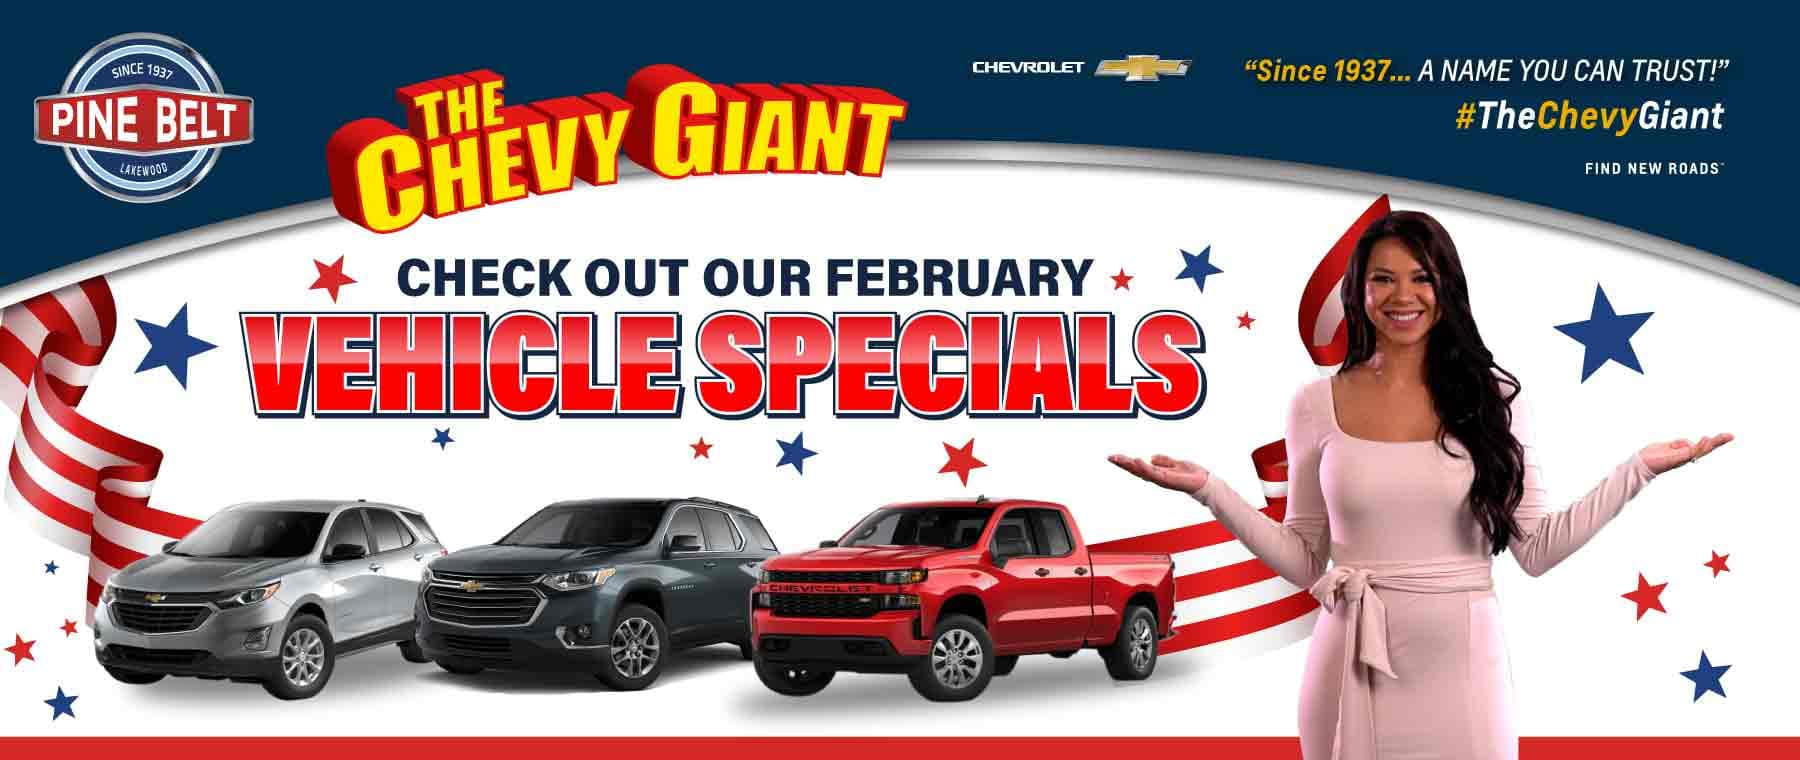 PBE-2053-February-Monthly-Specials_CHEVY